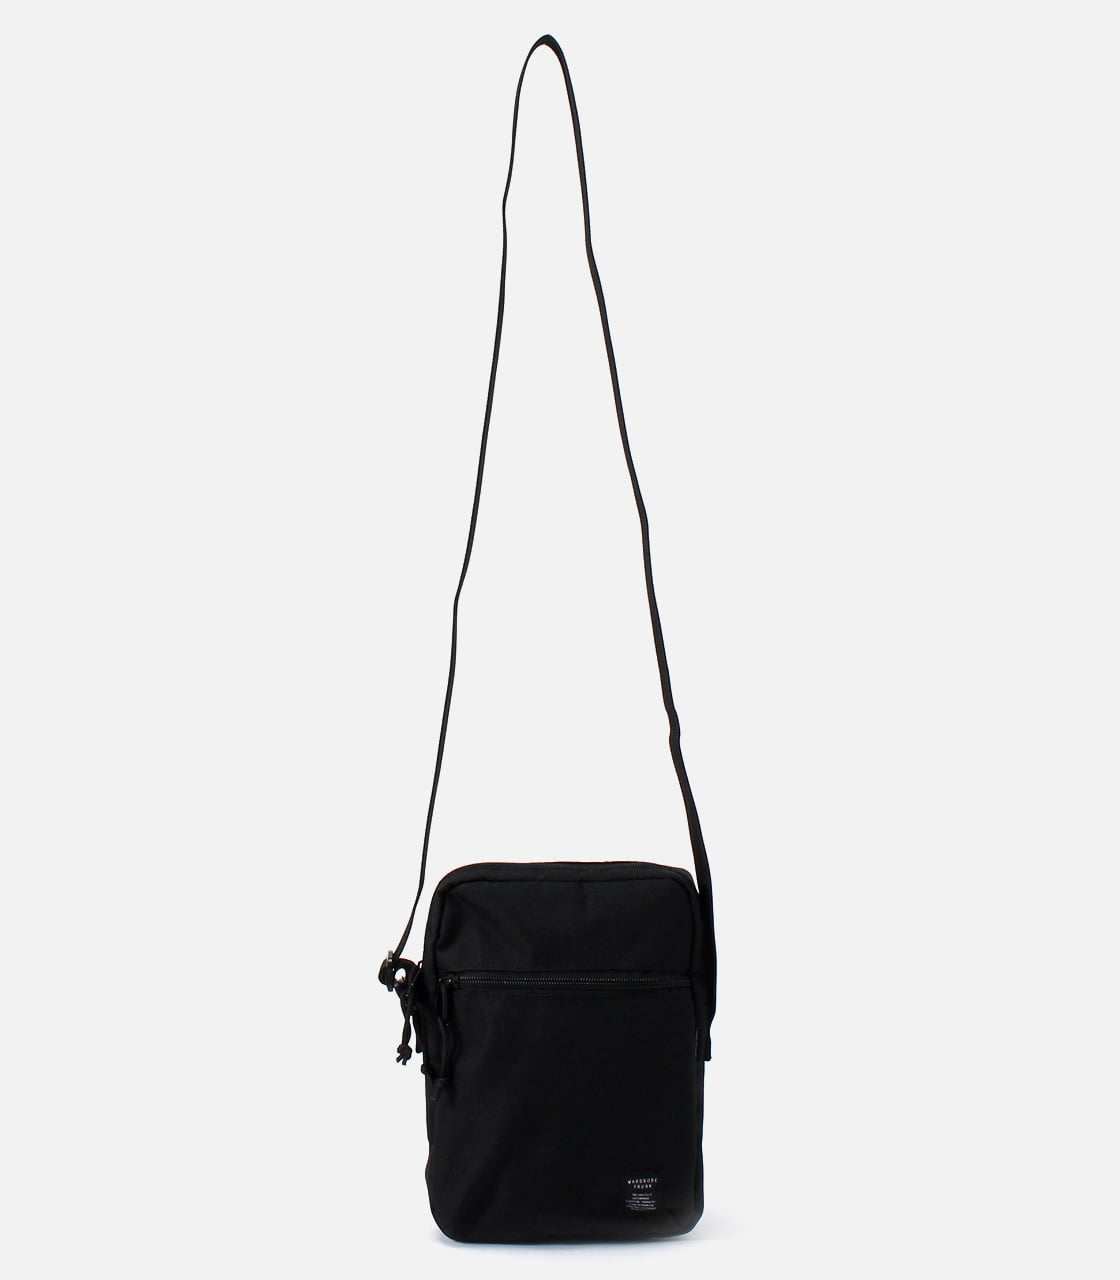 【AZUL BY MOUSSY】CONTEMPORARY SHOULDER BAG 詳細画像 BLK 1